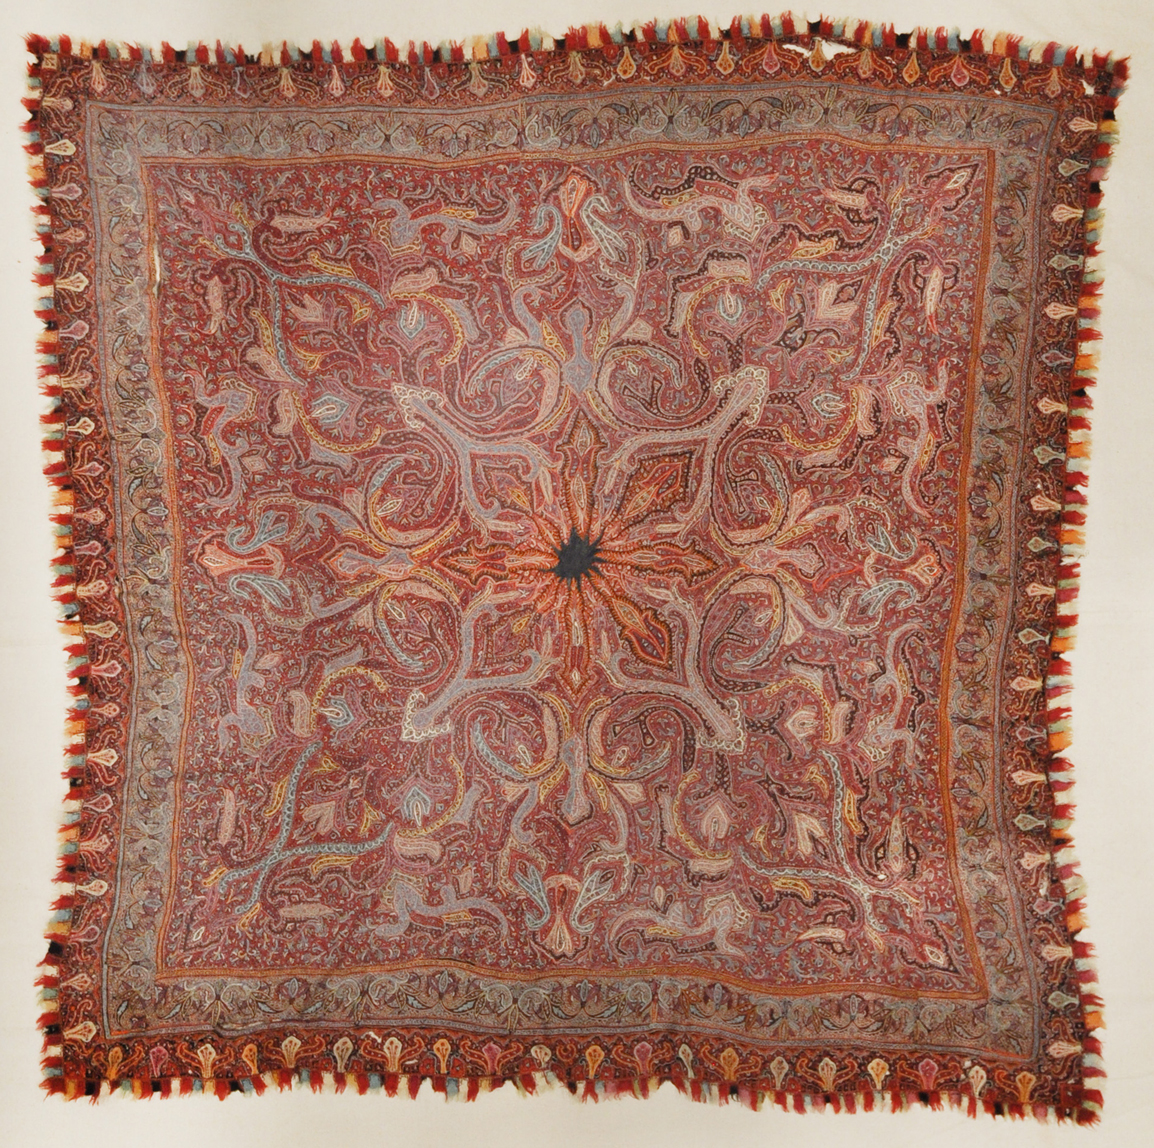 Antique Kerman Shawl Circa 1800